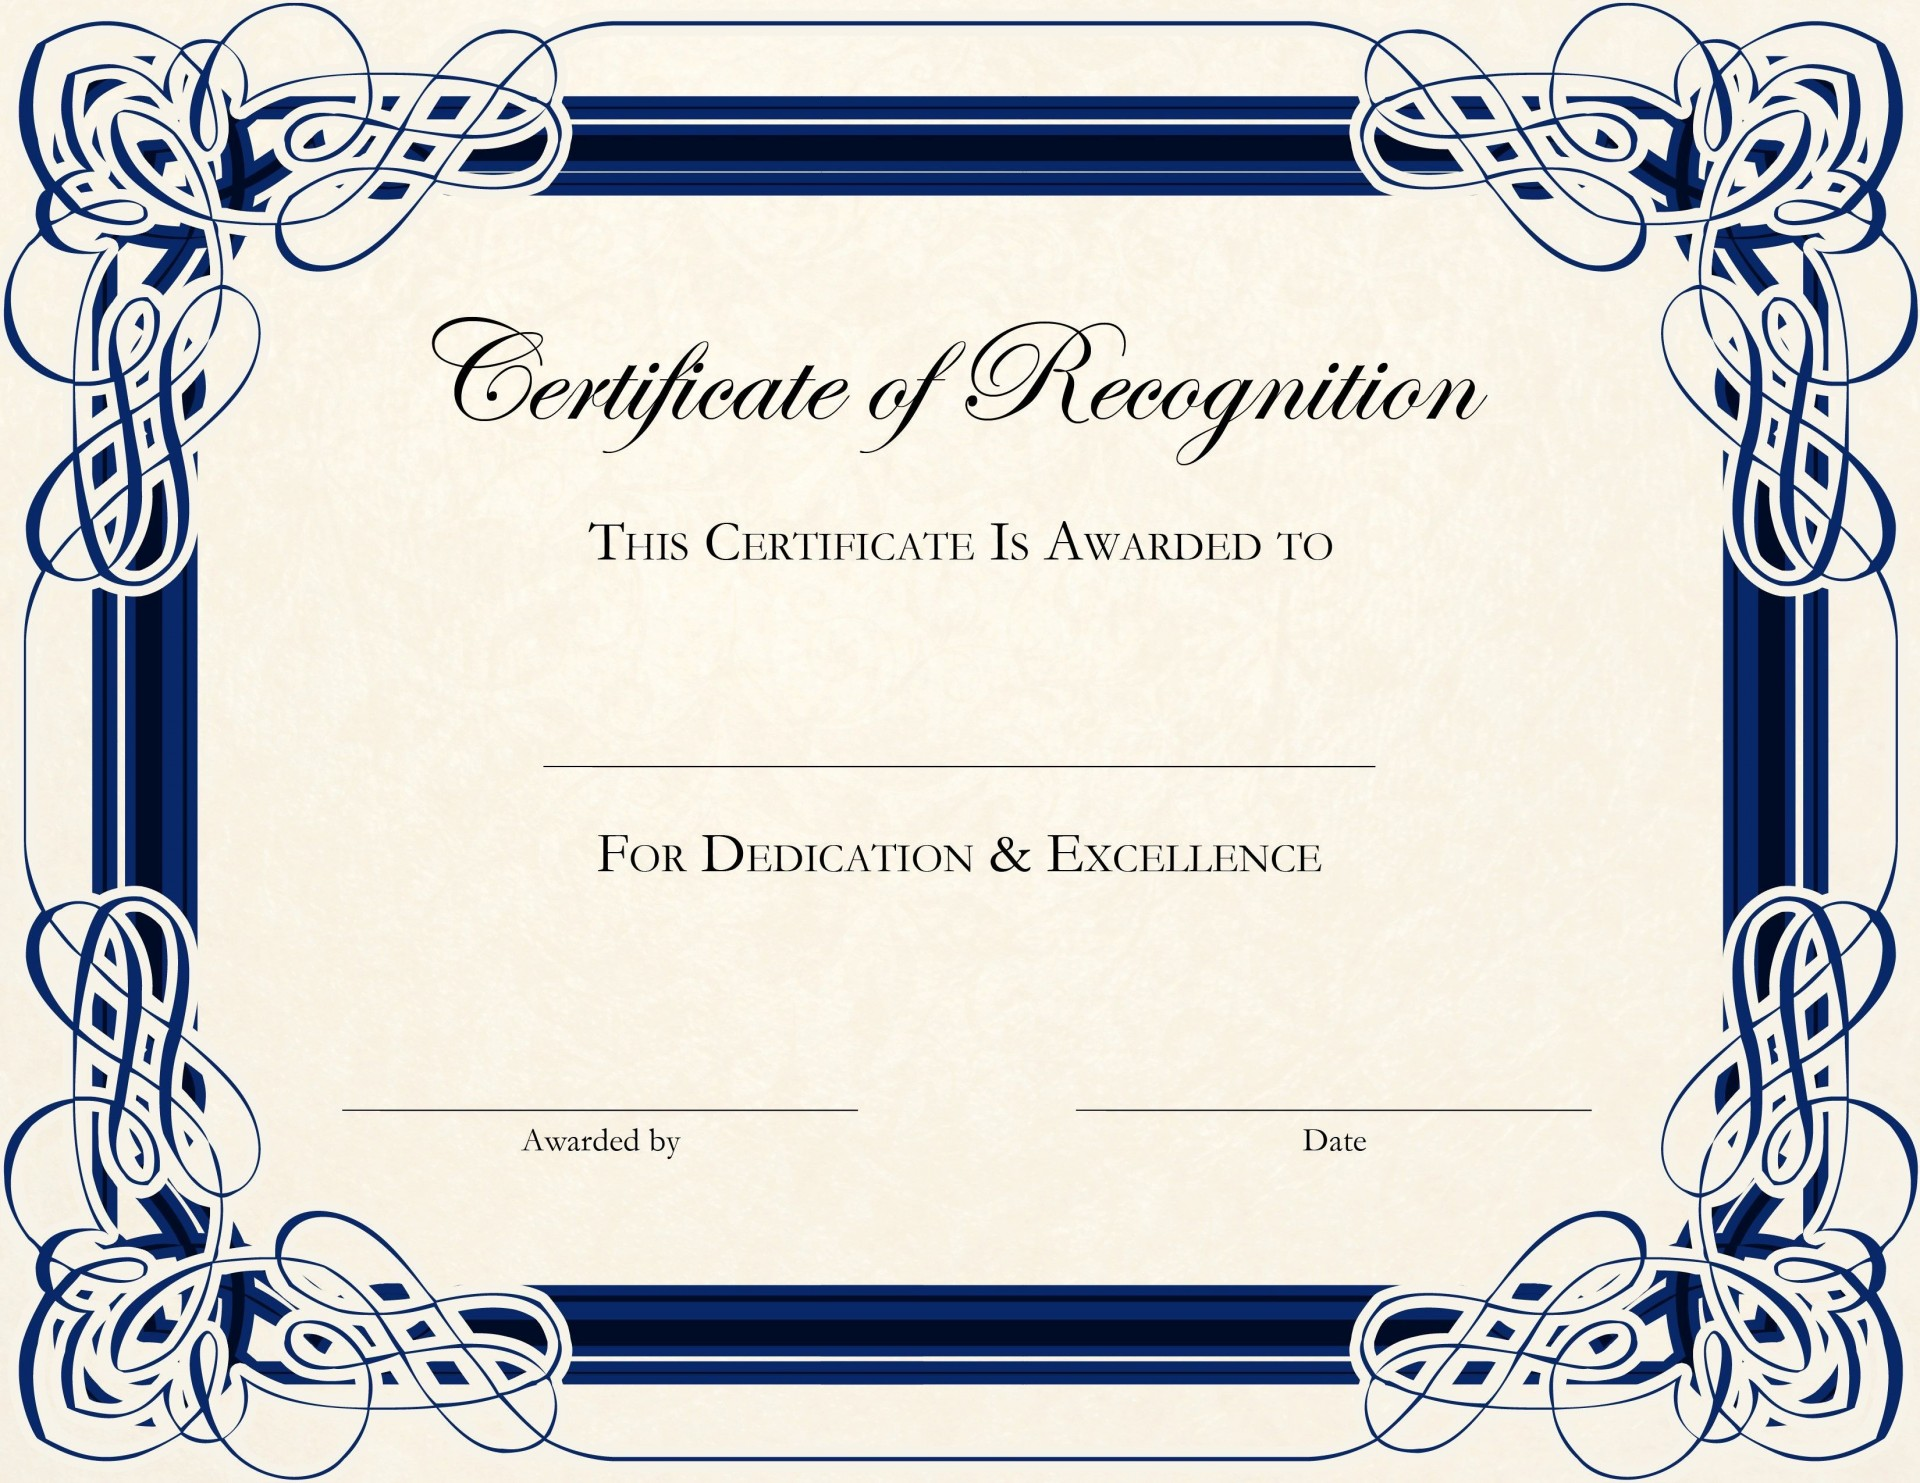 003 Unusual Free Blank Certificate Template Sample  Templates Downloadable Printable And Award Gift For Word1920